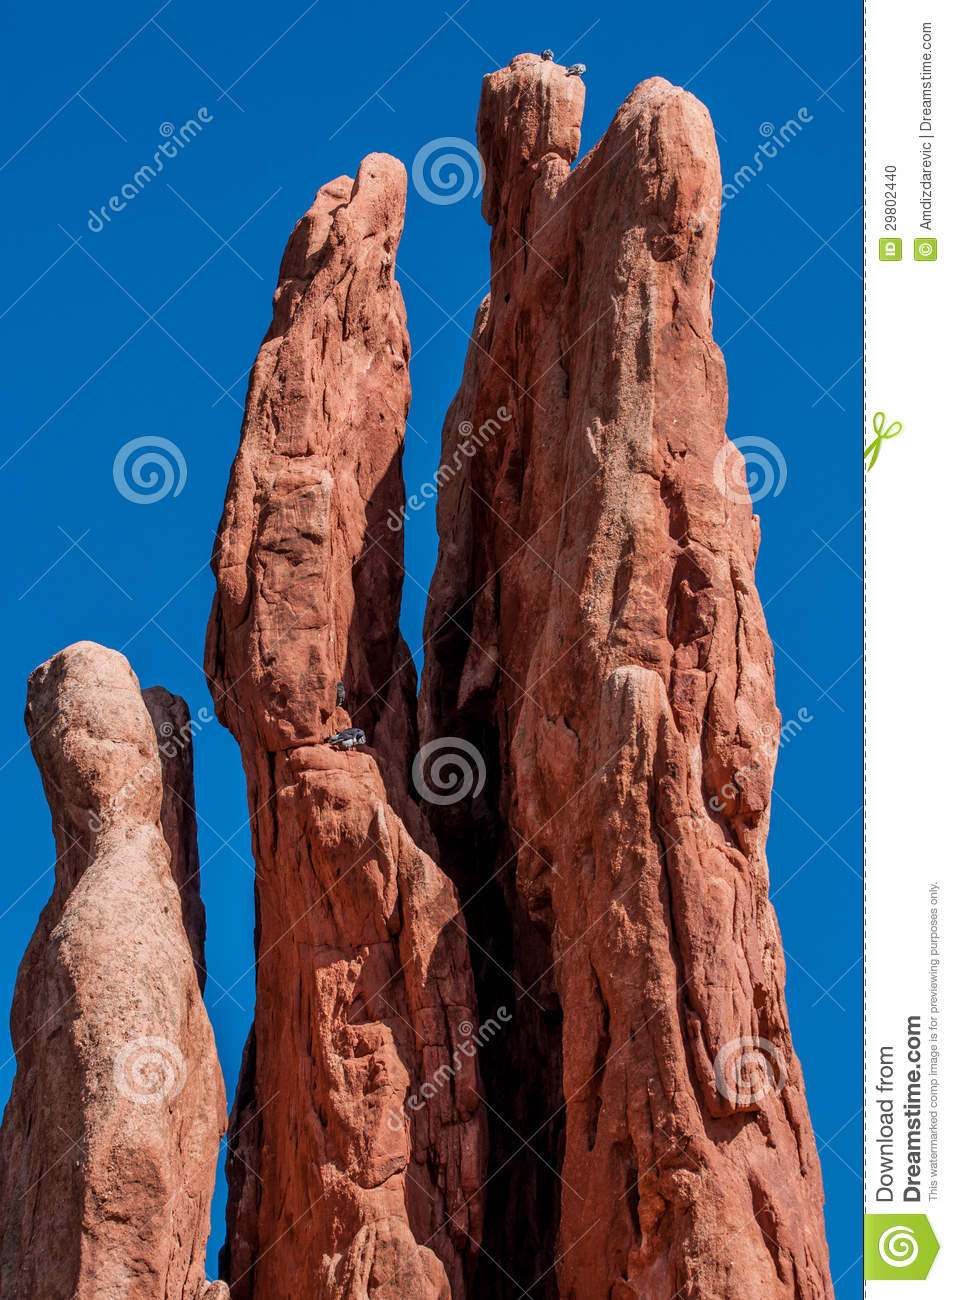 Rock Climbing Stock Photo Image 29802440